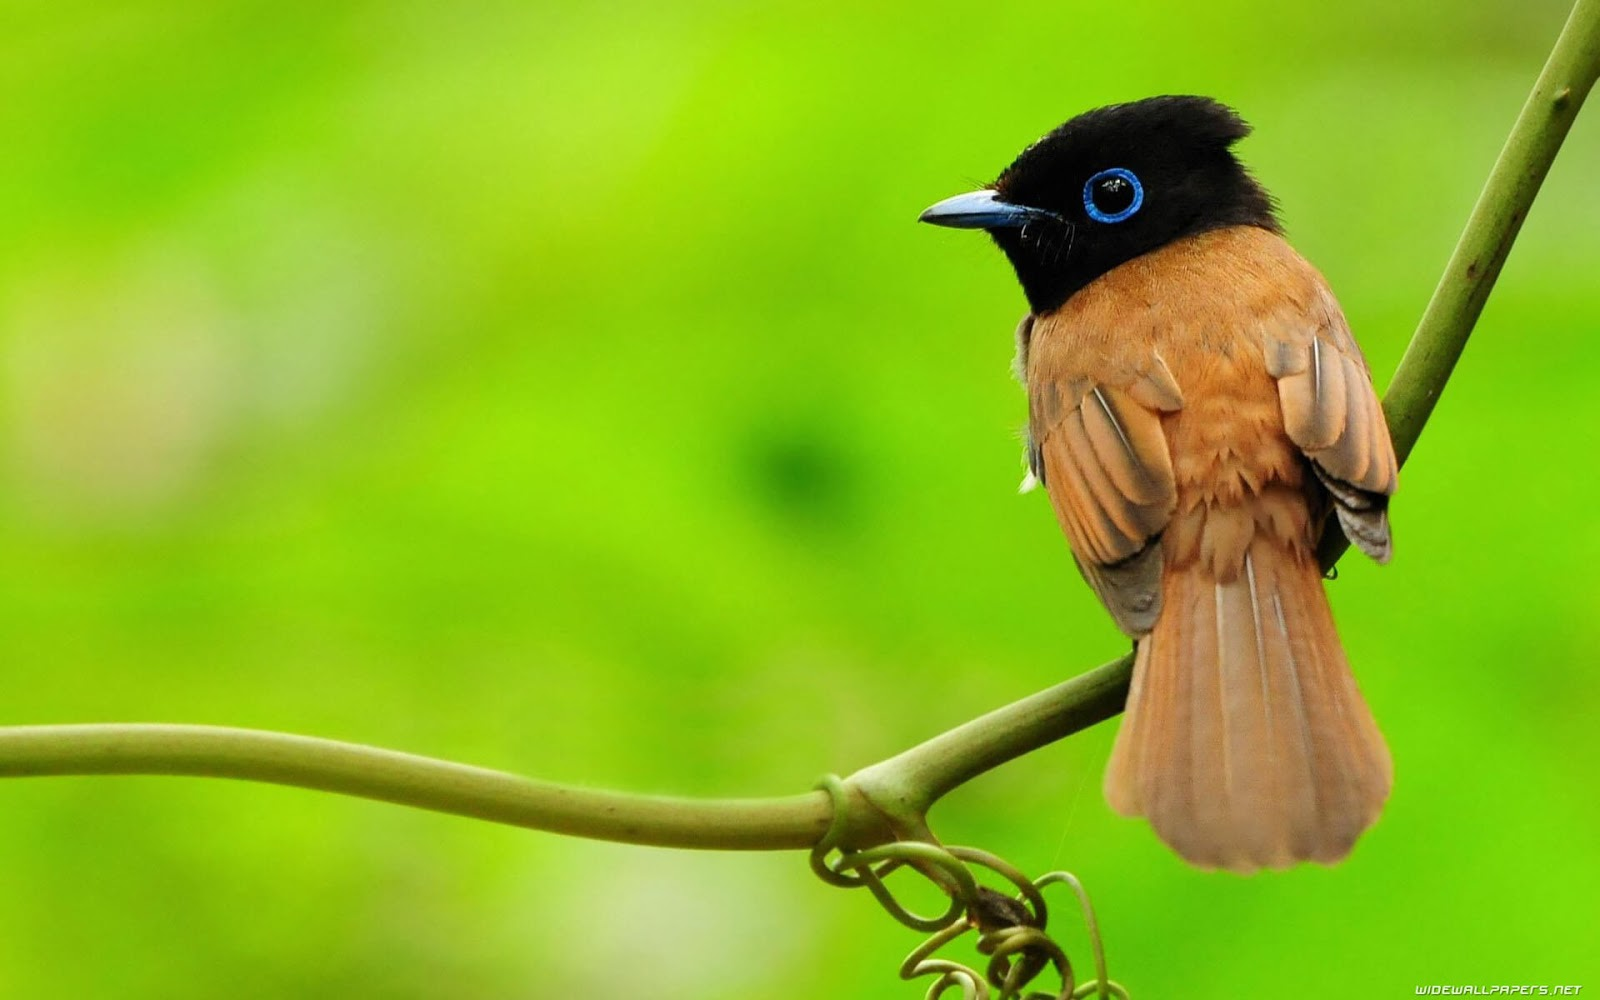 Hd Bird Wallpaper 3d Images Download Free New Wallpapers Hd High Quality Motion